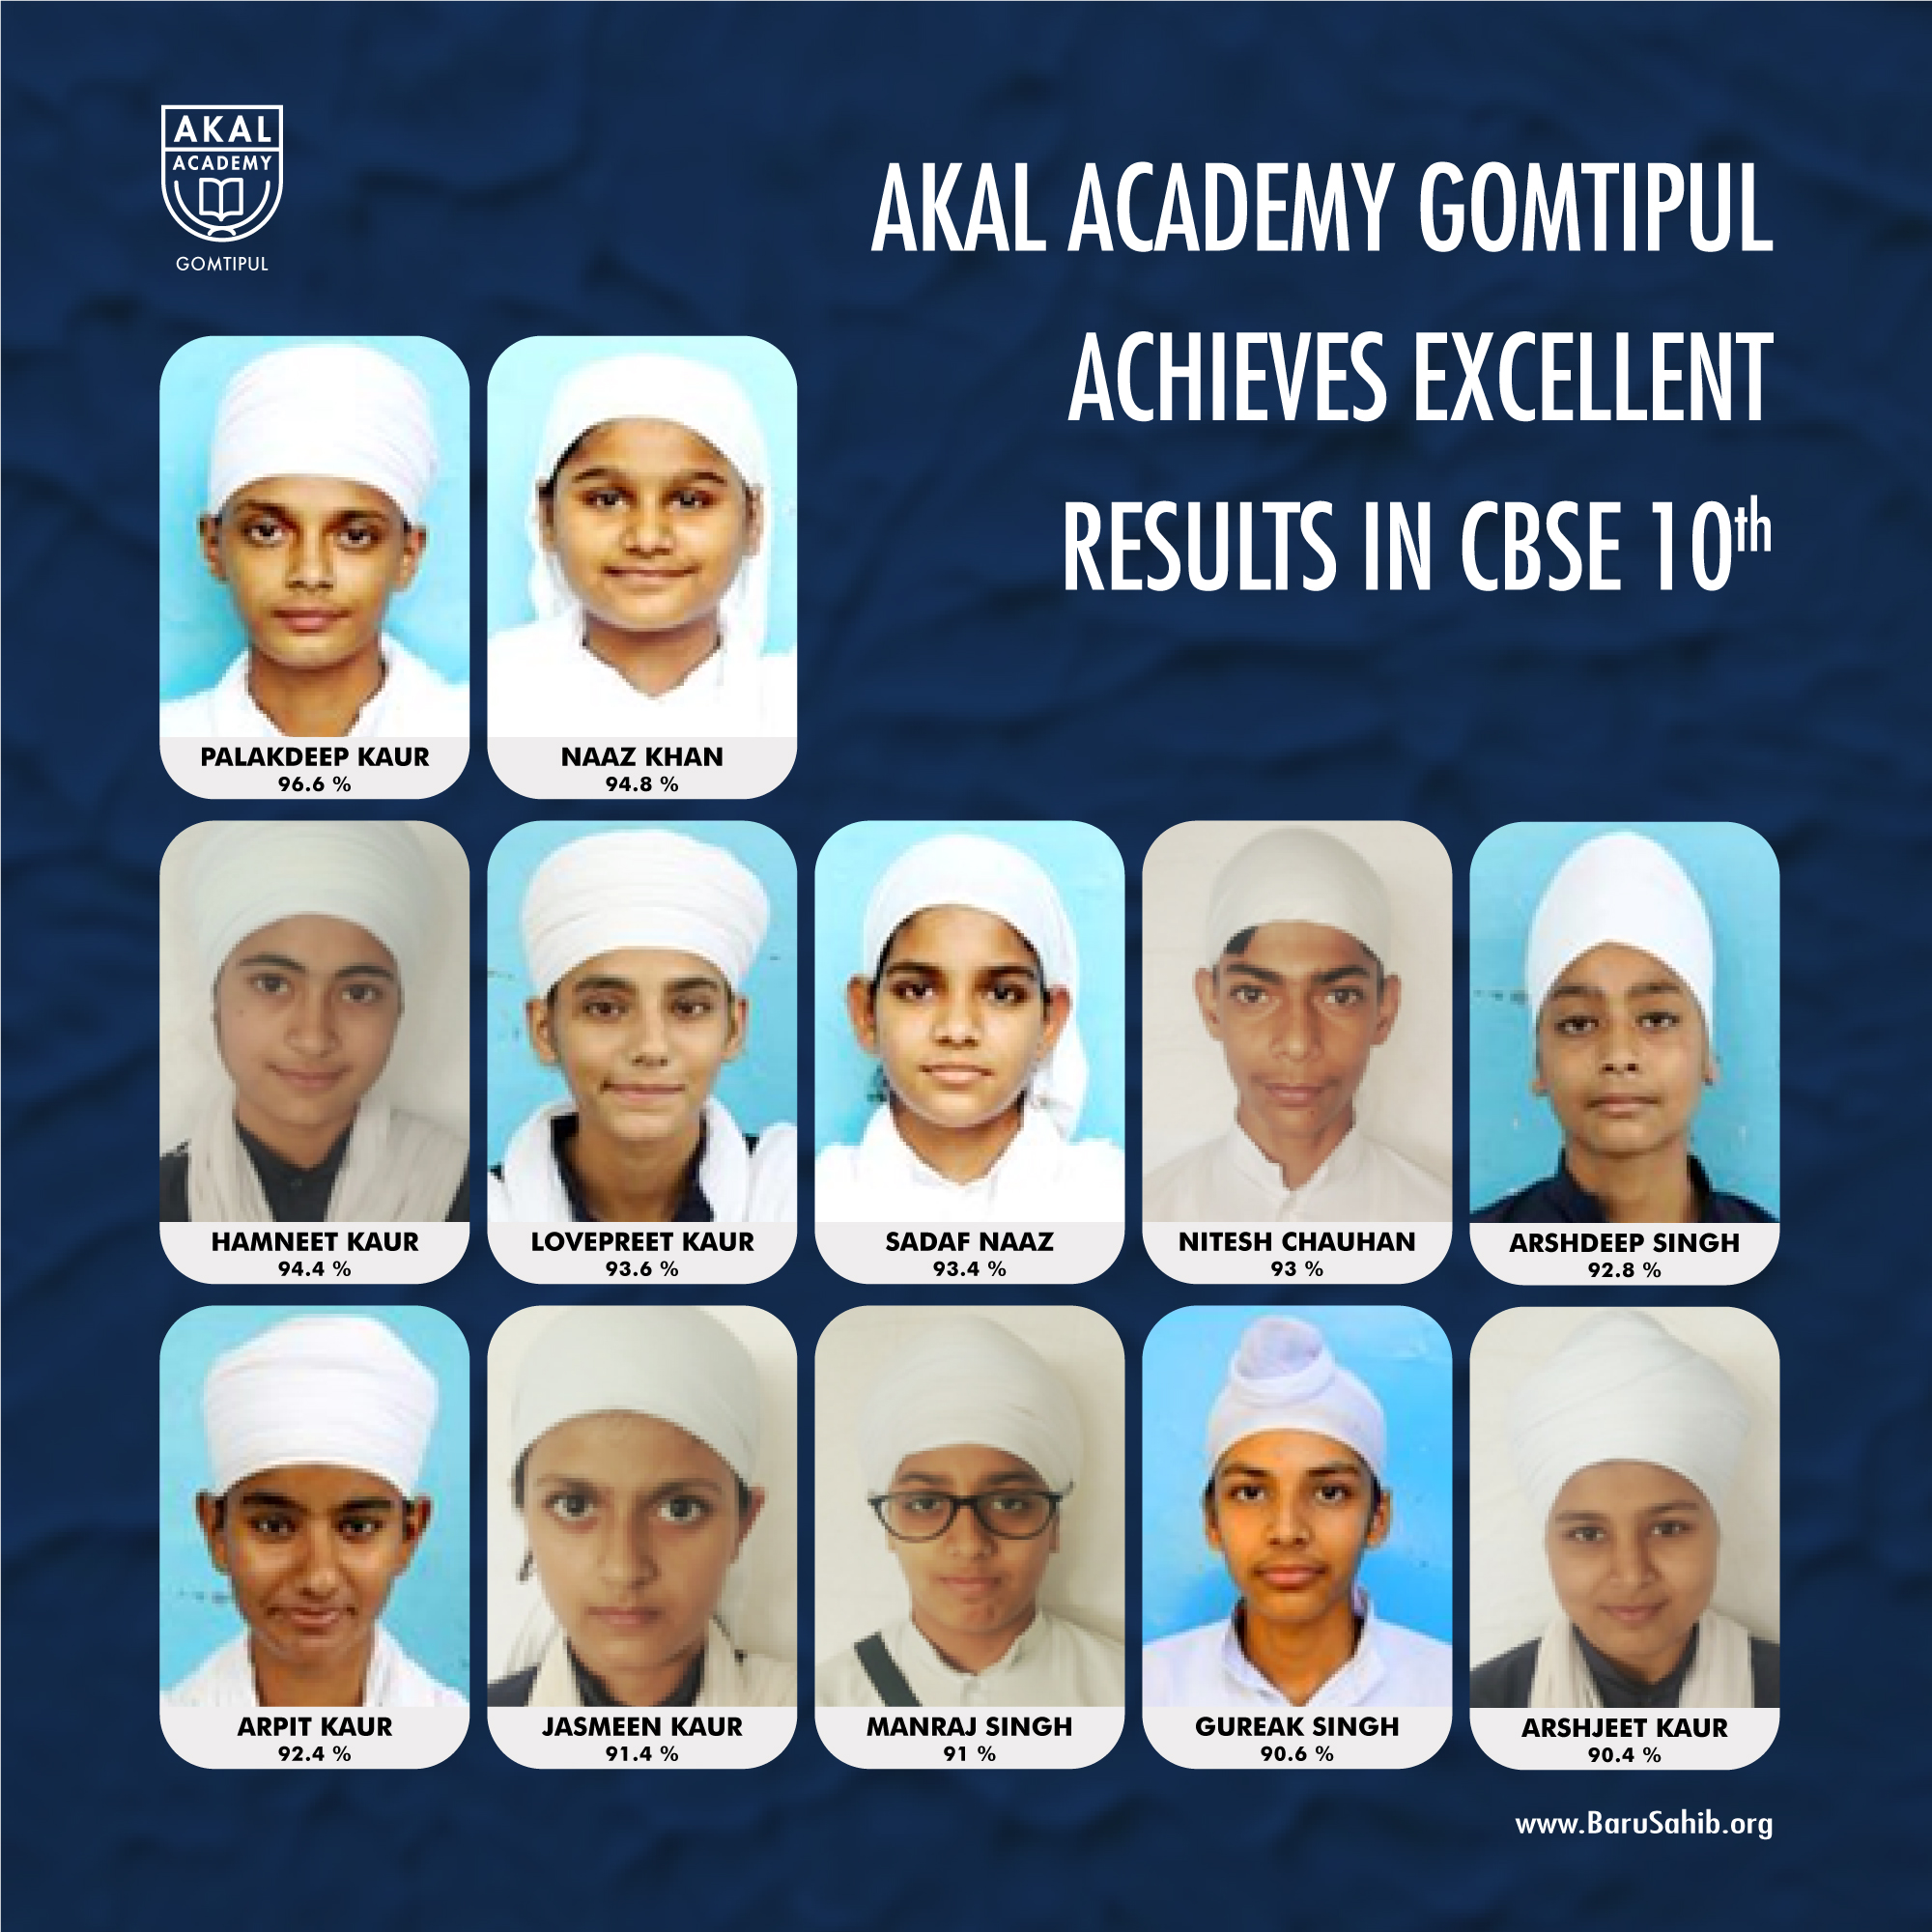 Akal Academy Gomtipul Achieves Excellent Results in CBSE 10th